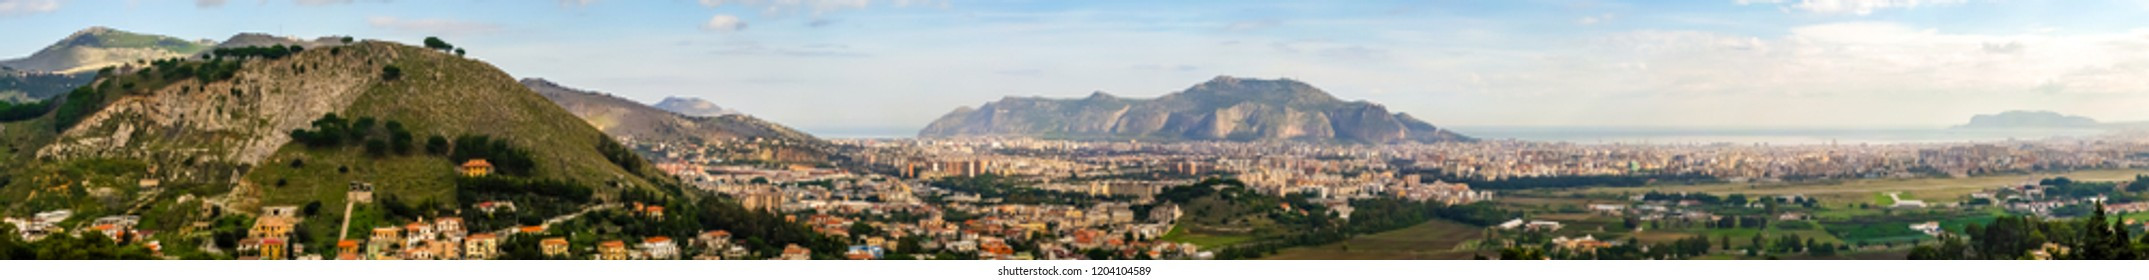 High resolution panoramic image of the city and gulf of Palermo, Sicily, from a viewpoint on the surrounding hilltop town Baida. The view includes Mondello, Monte Pellegrino and Boccadifalco airport.